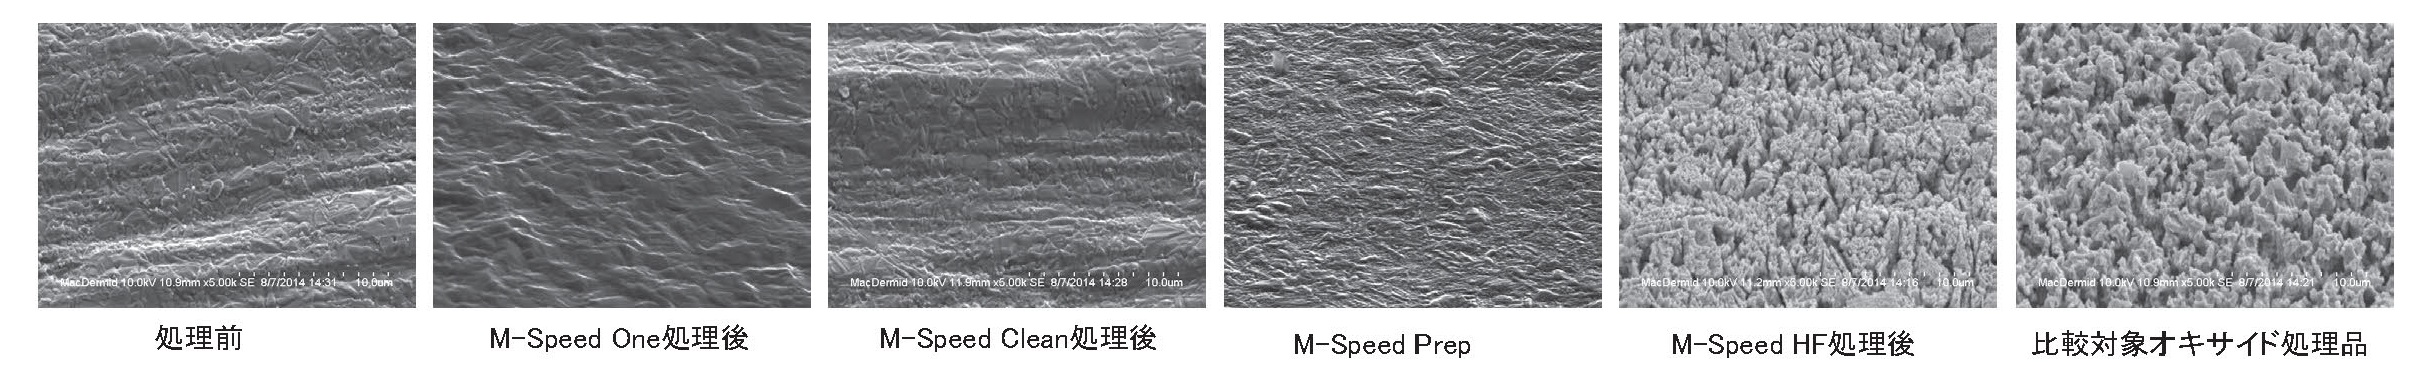 M-Speed Surface Images